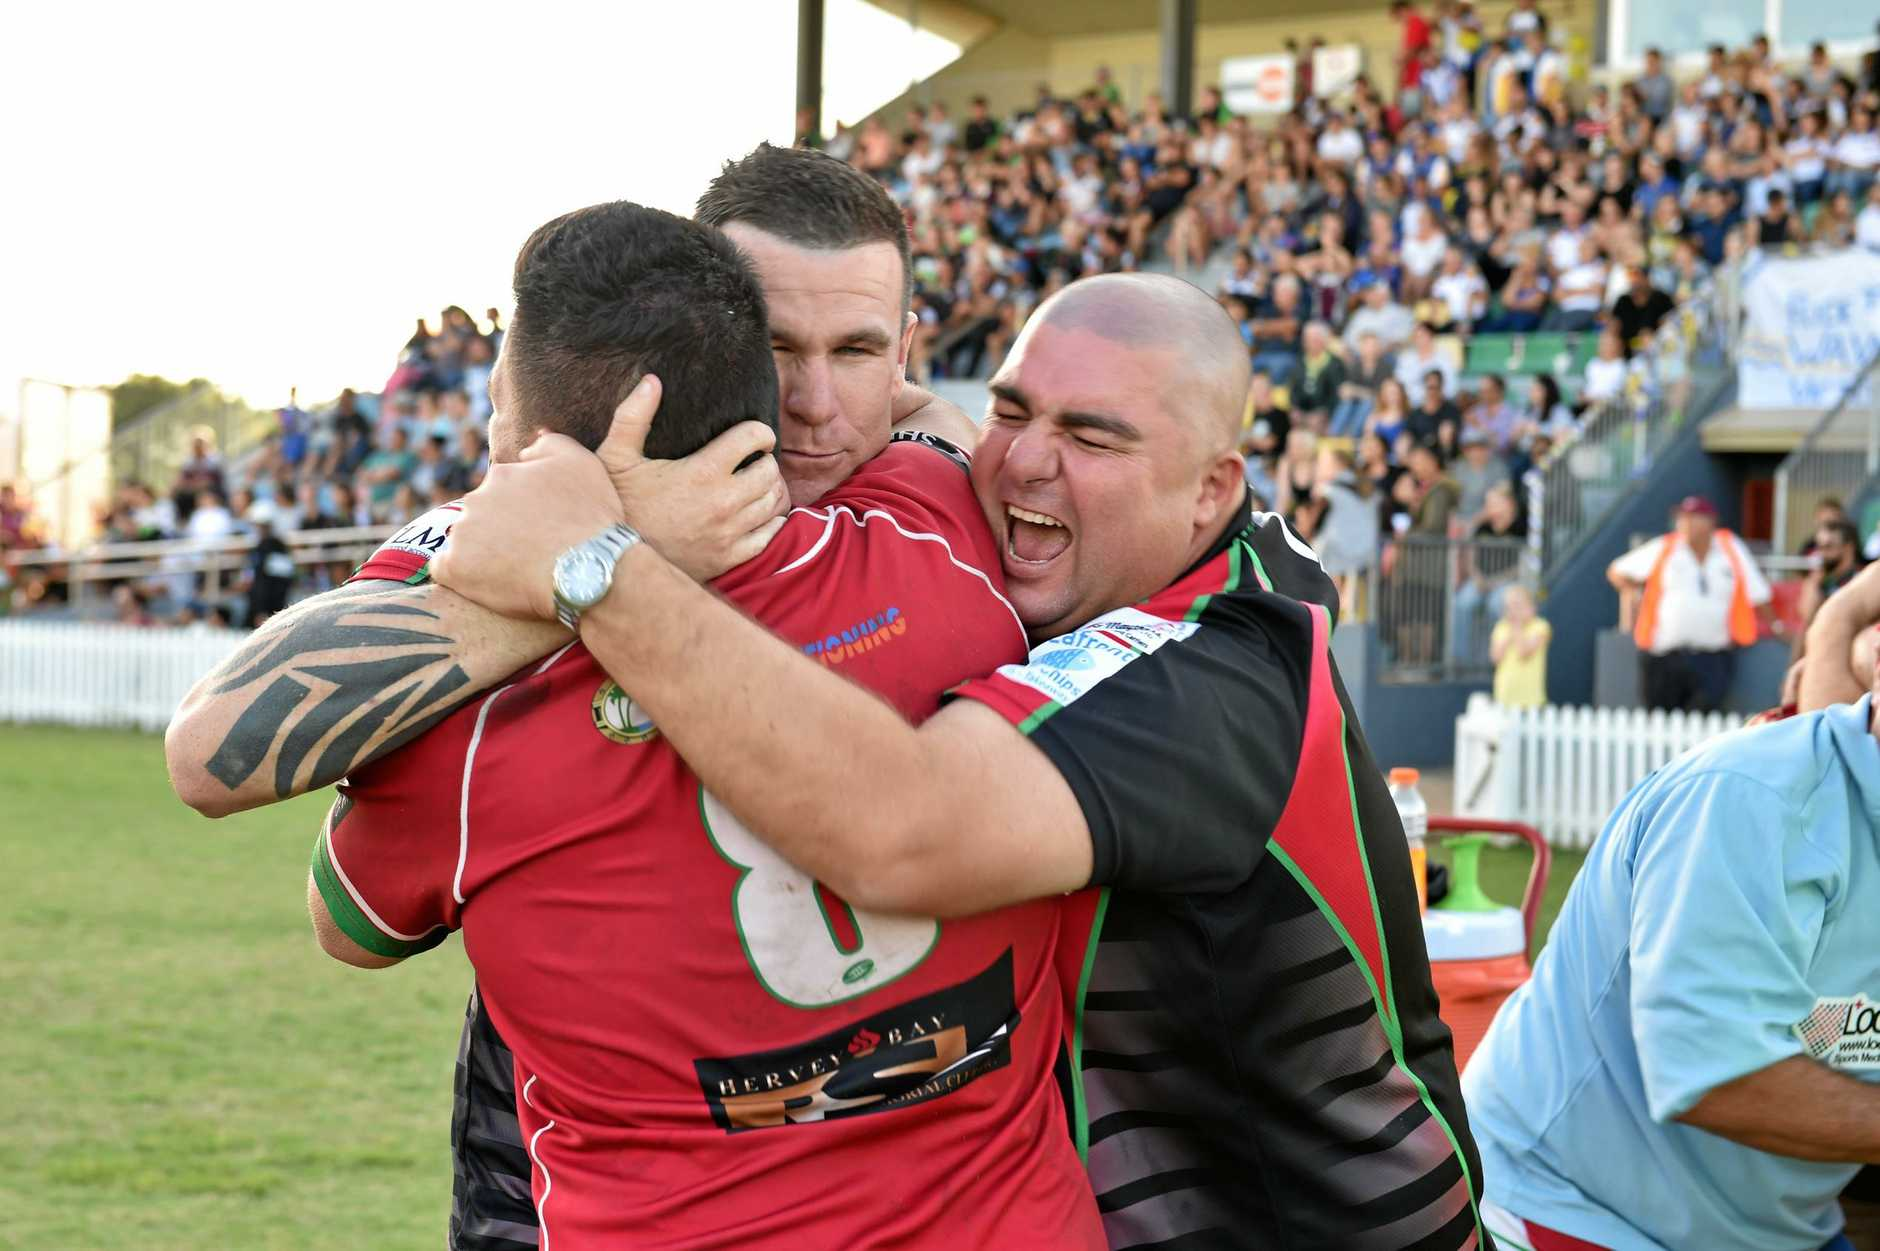 FLASHBACK: Nathan McGrath (right) celebrates with coach Tye Ingebrigtsen (centre) after the Hervey Bay Seagulls won the Bundaberg Rugby League grand final against Waves Tigers in 2016.